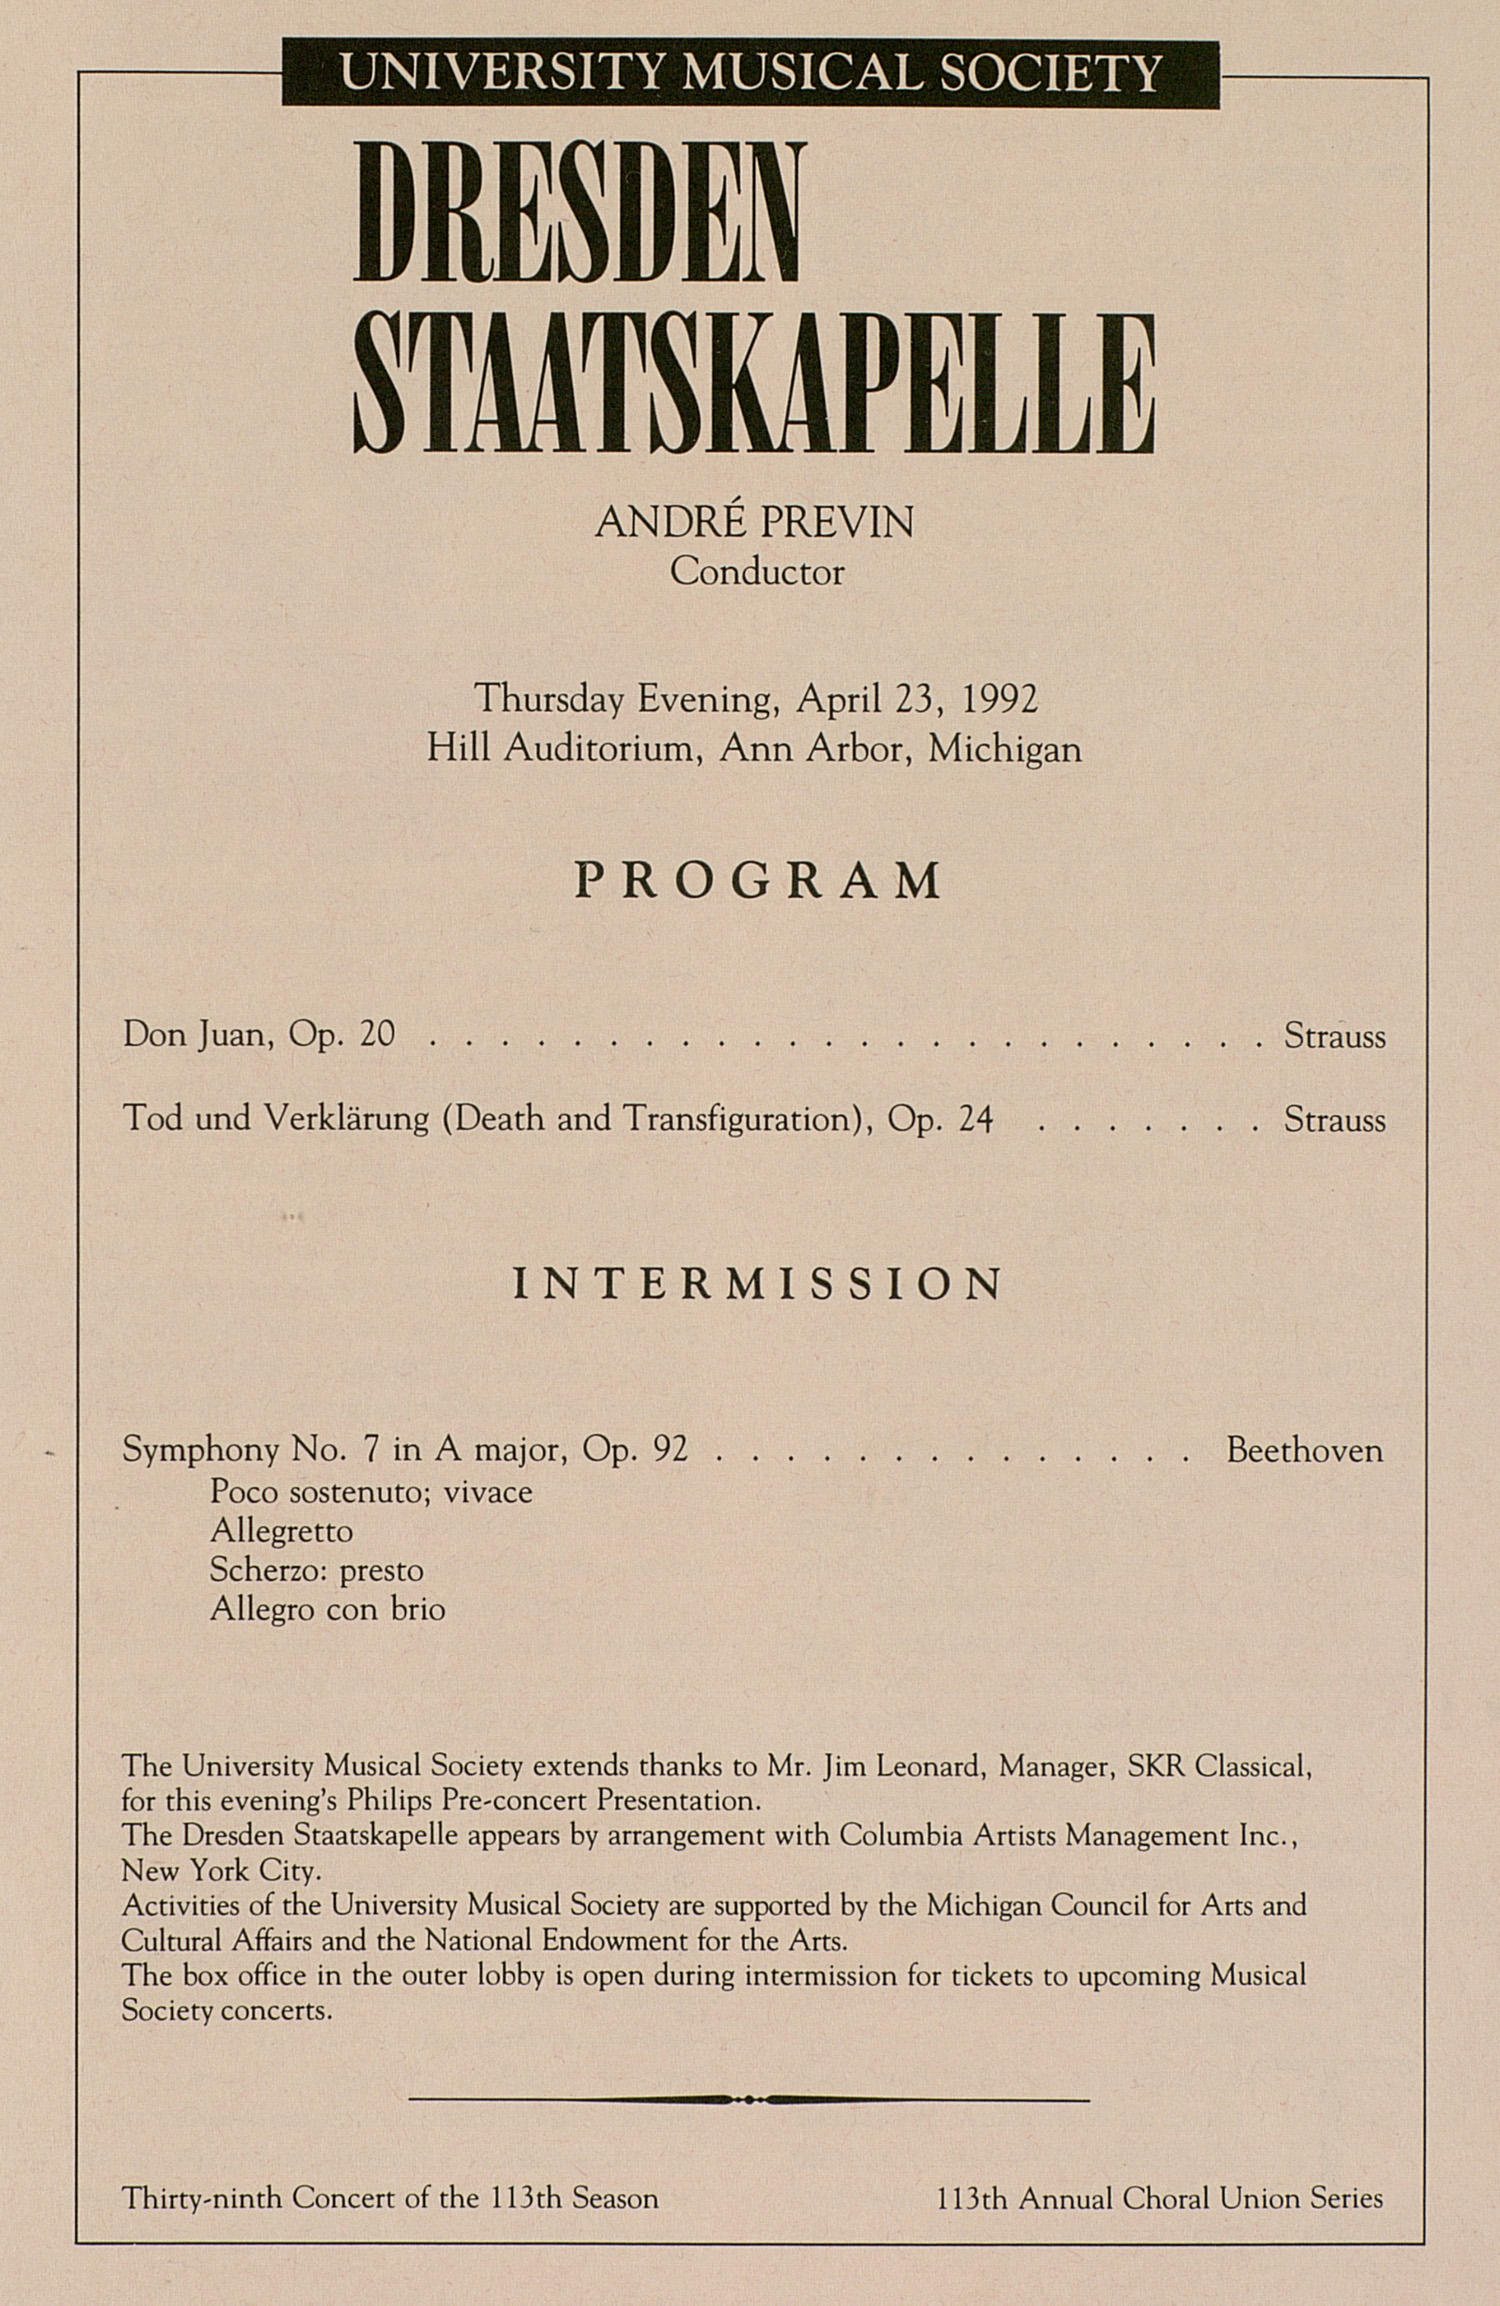 UMS Concert Program, April 23, 1992: Dresden Staatskapelle --  image